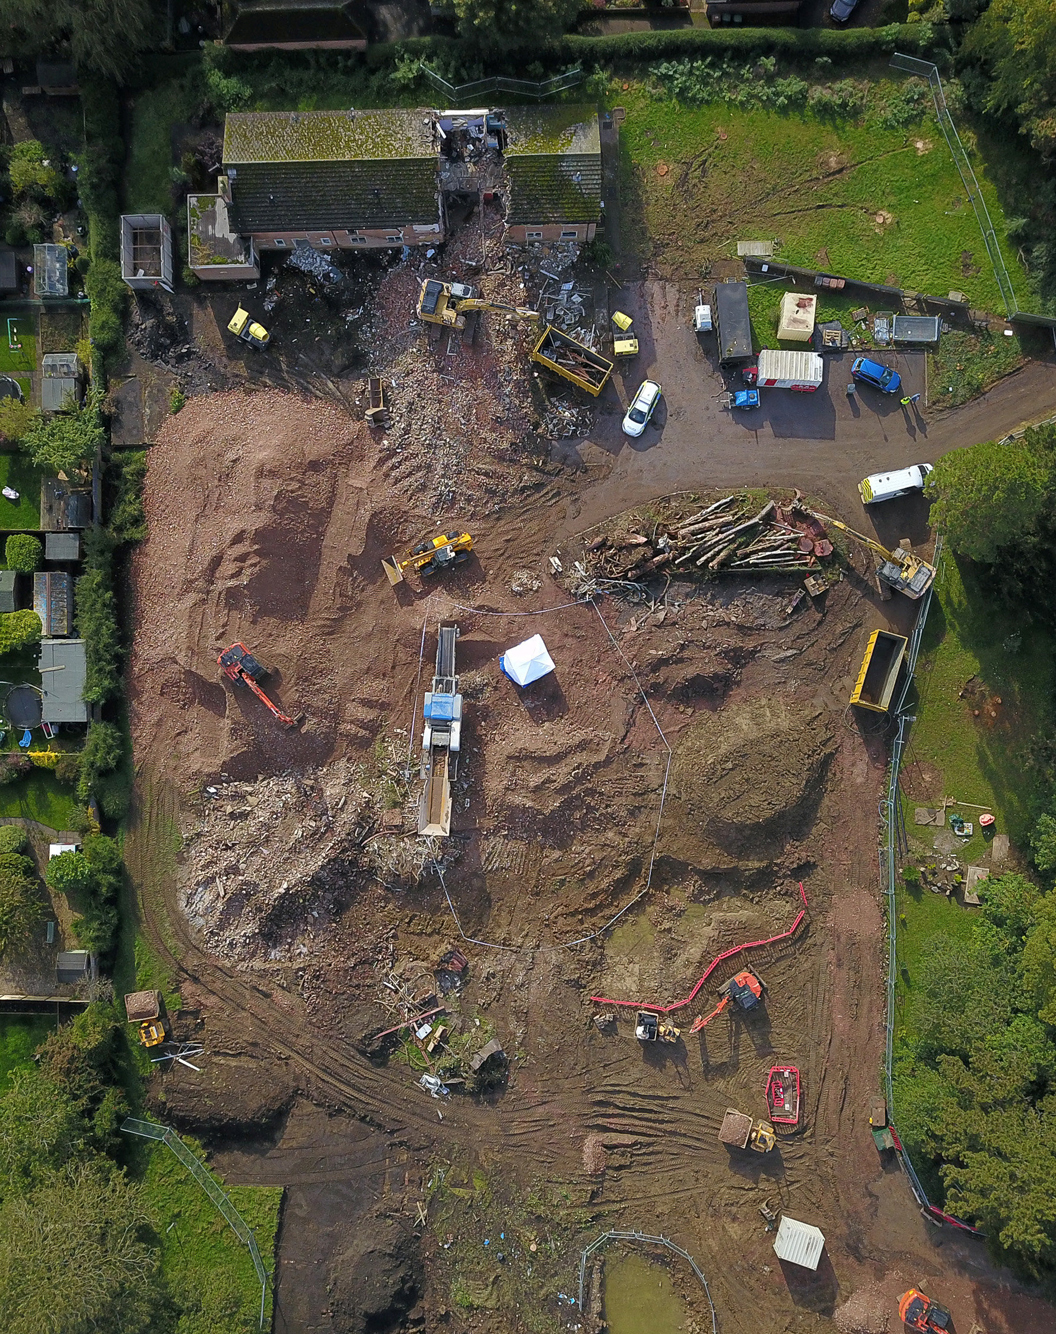 1,400-year-old 'eerie' human remains found under former English nursing home